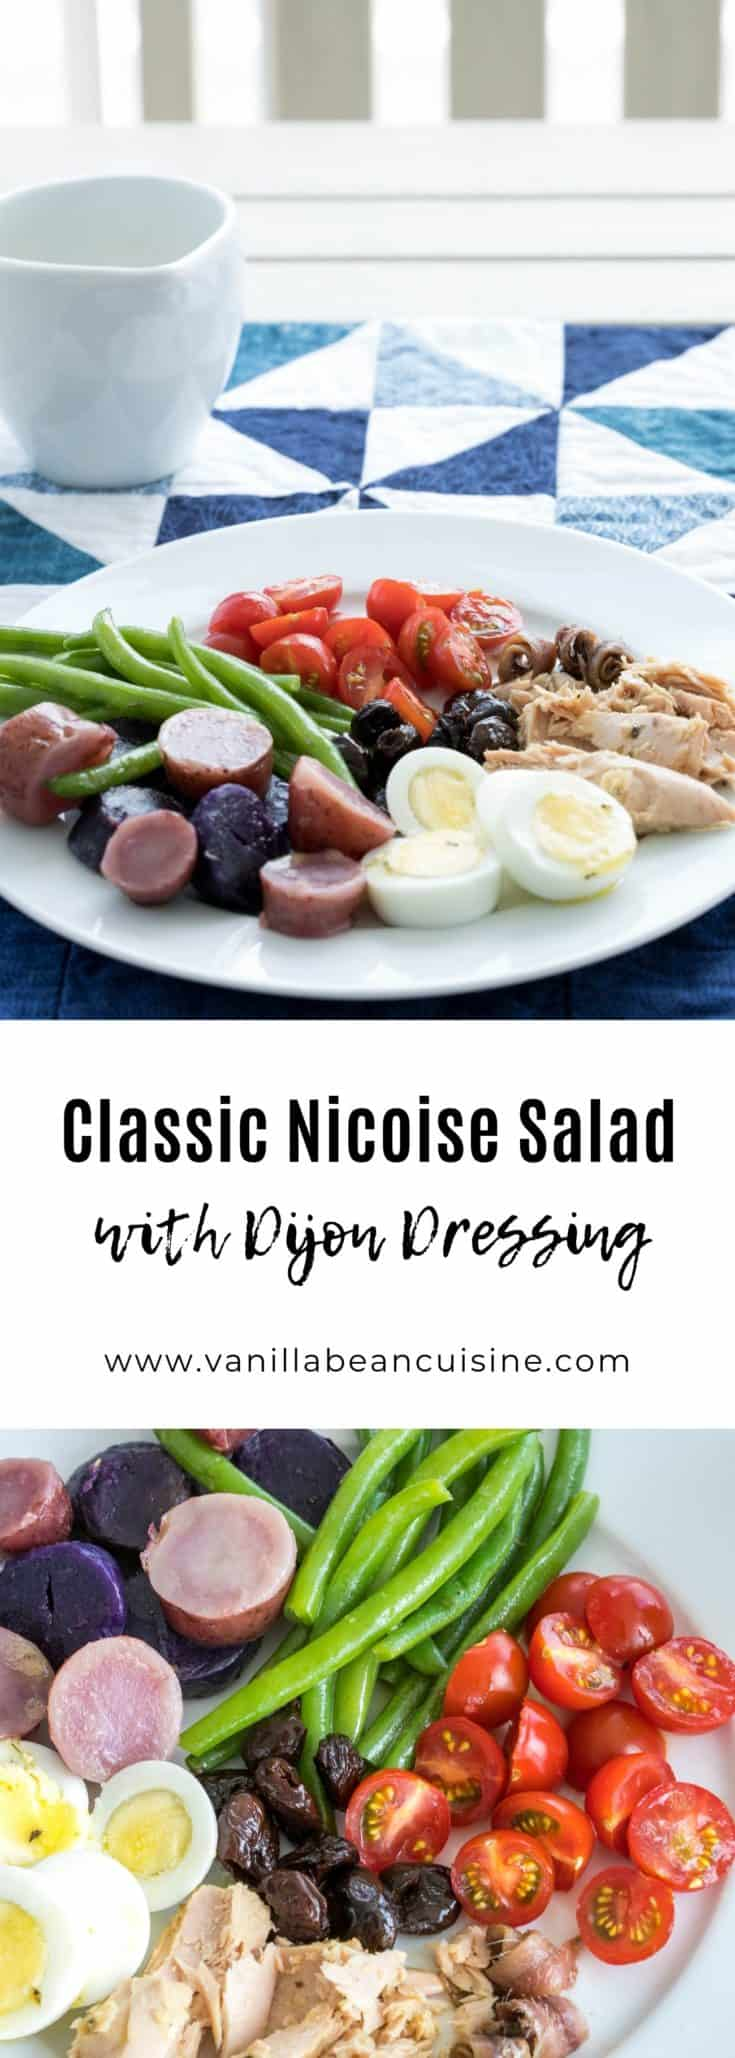 This classic Nicoise salad is perfect for a light summer meal. Eggs, potatoes, green beans, tuna, tomatoes, and olives are lovely tossed with this dijon vinaigrette. #nicoisesalad #summermeals #lowcarbmeals #glutenfree #vanillabeancuisine